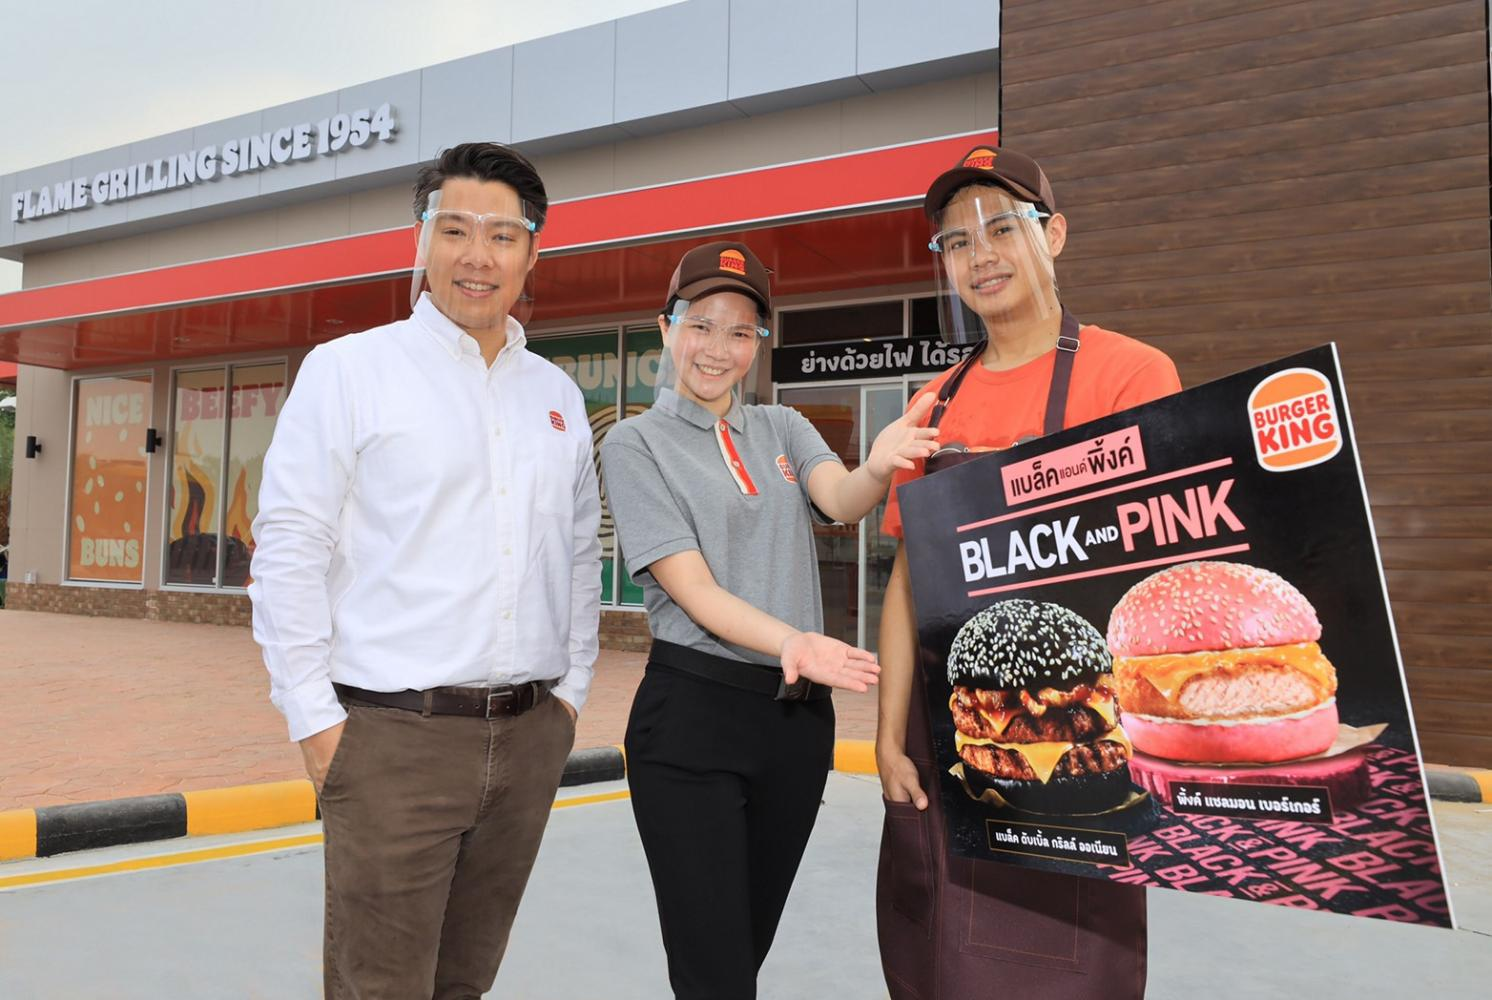 Burger King rolling out local facelift